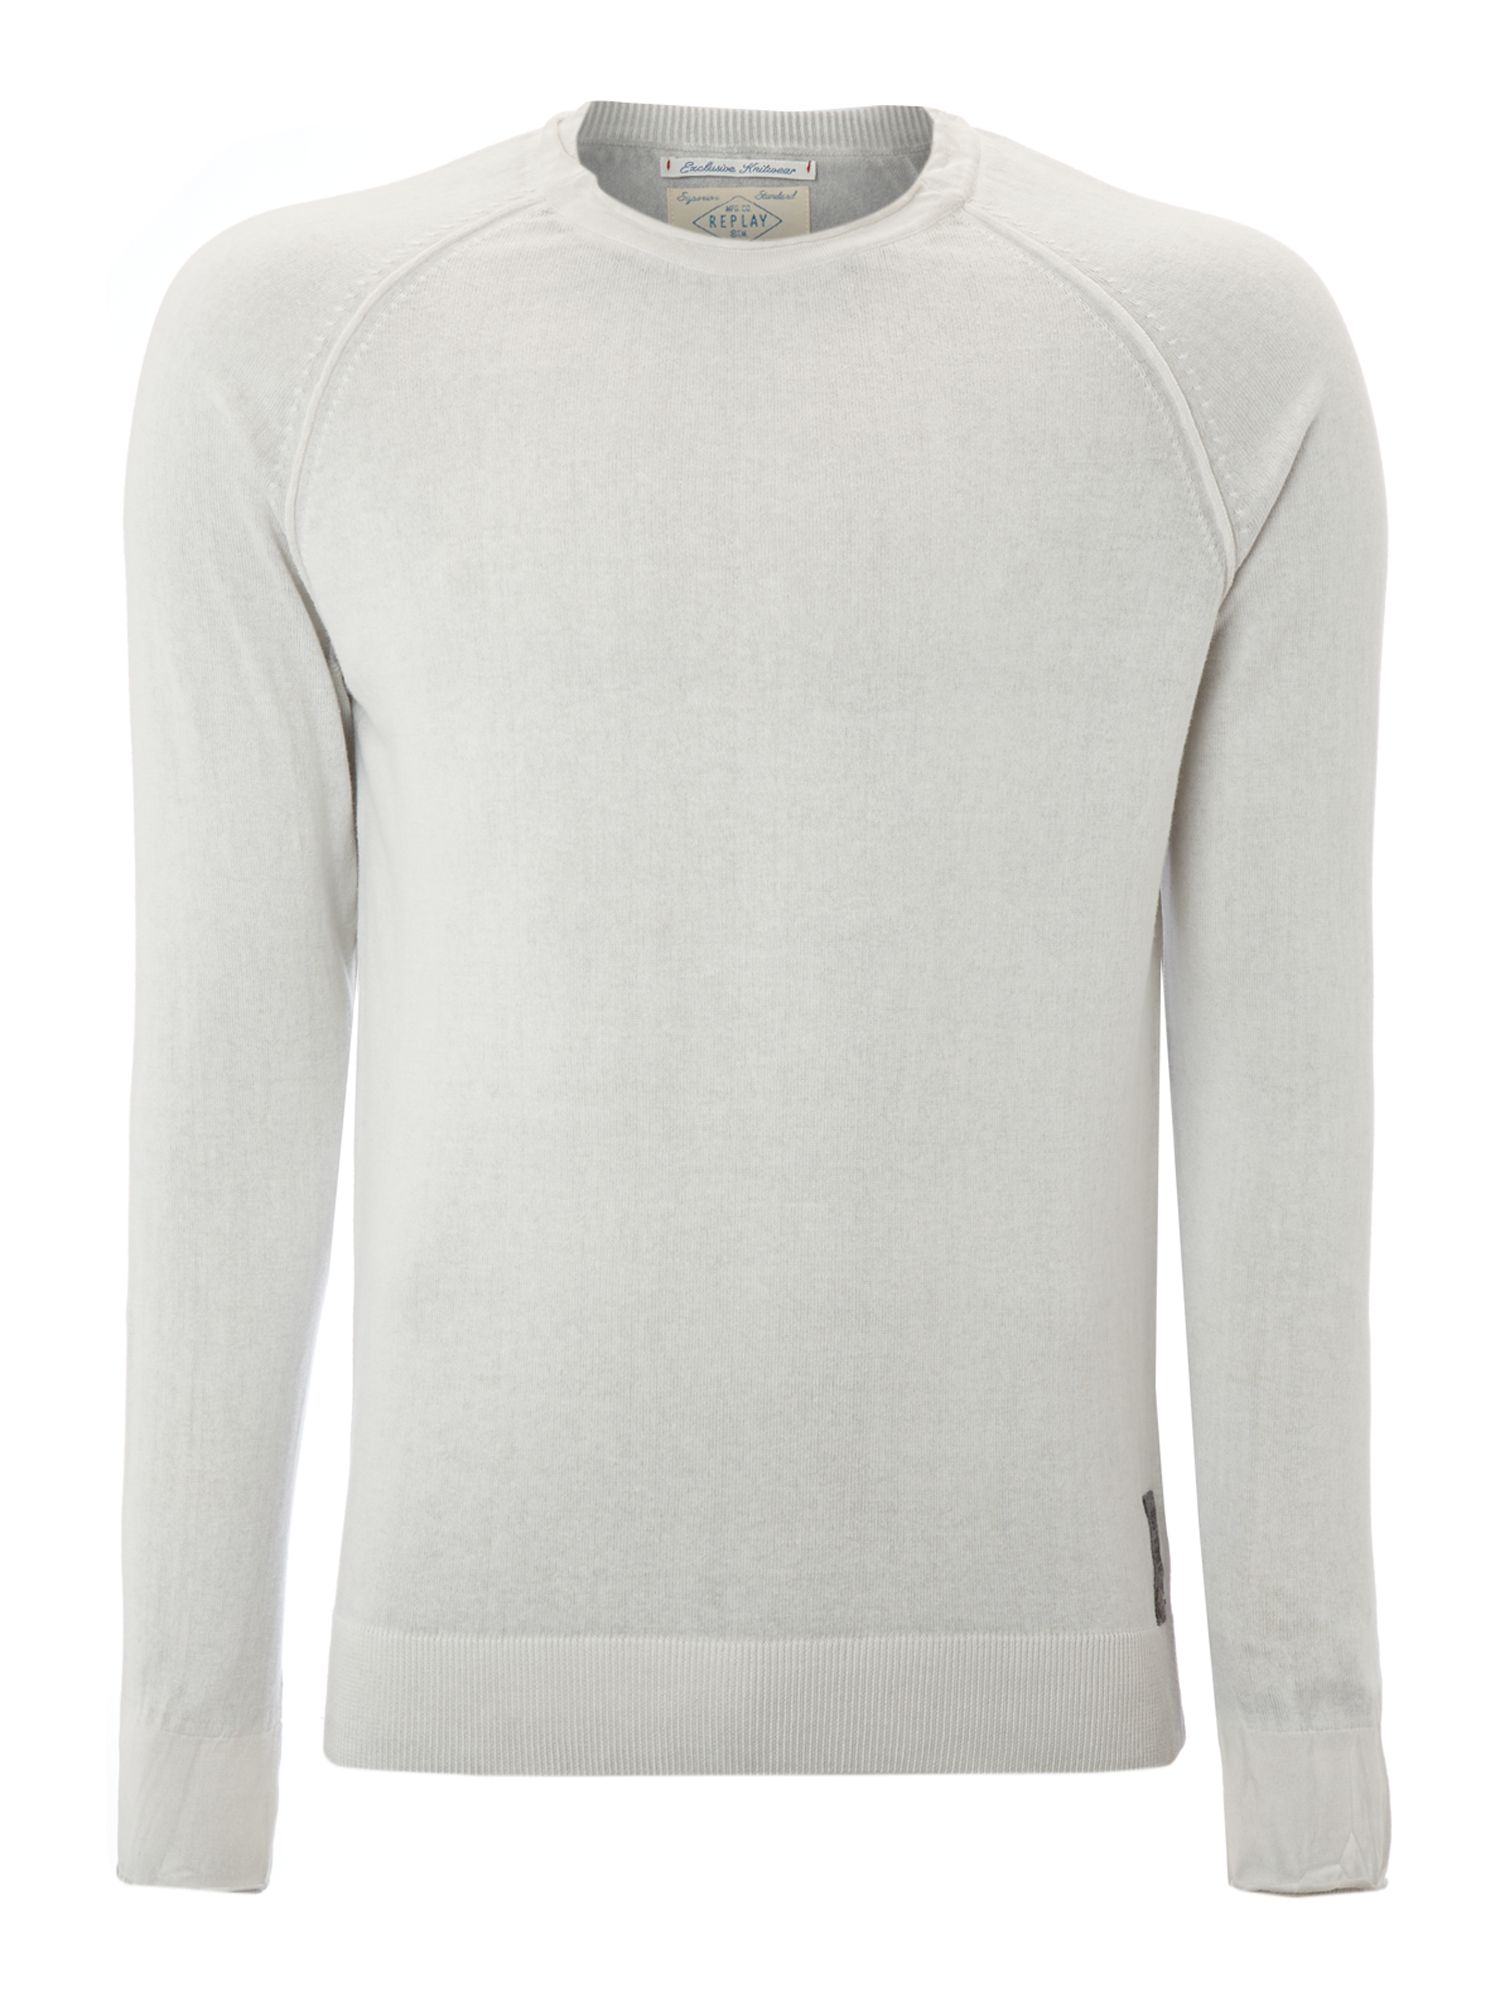 Round neck cotton mesh jumper